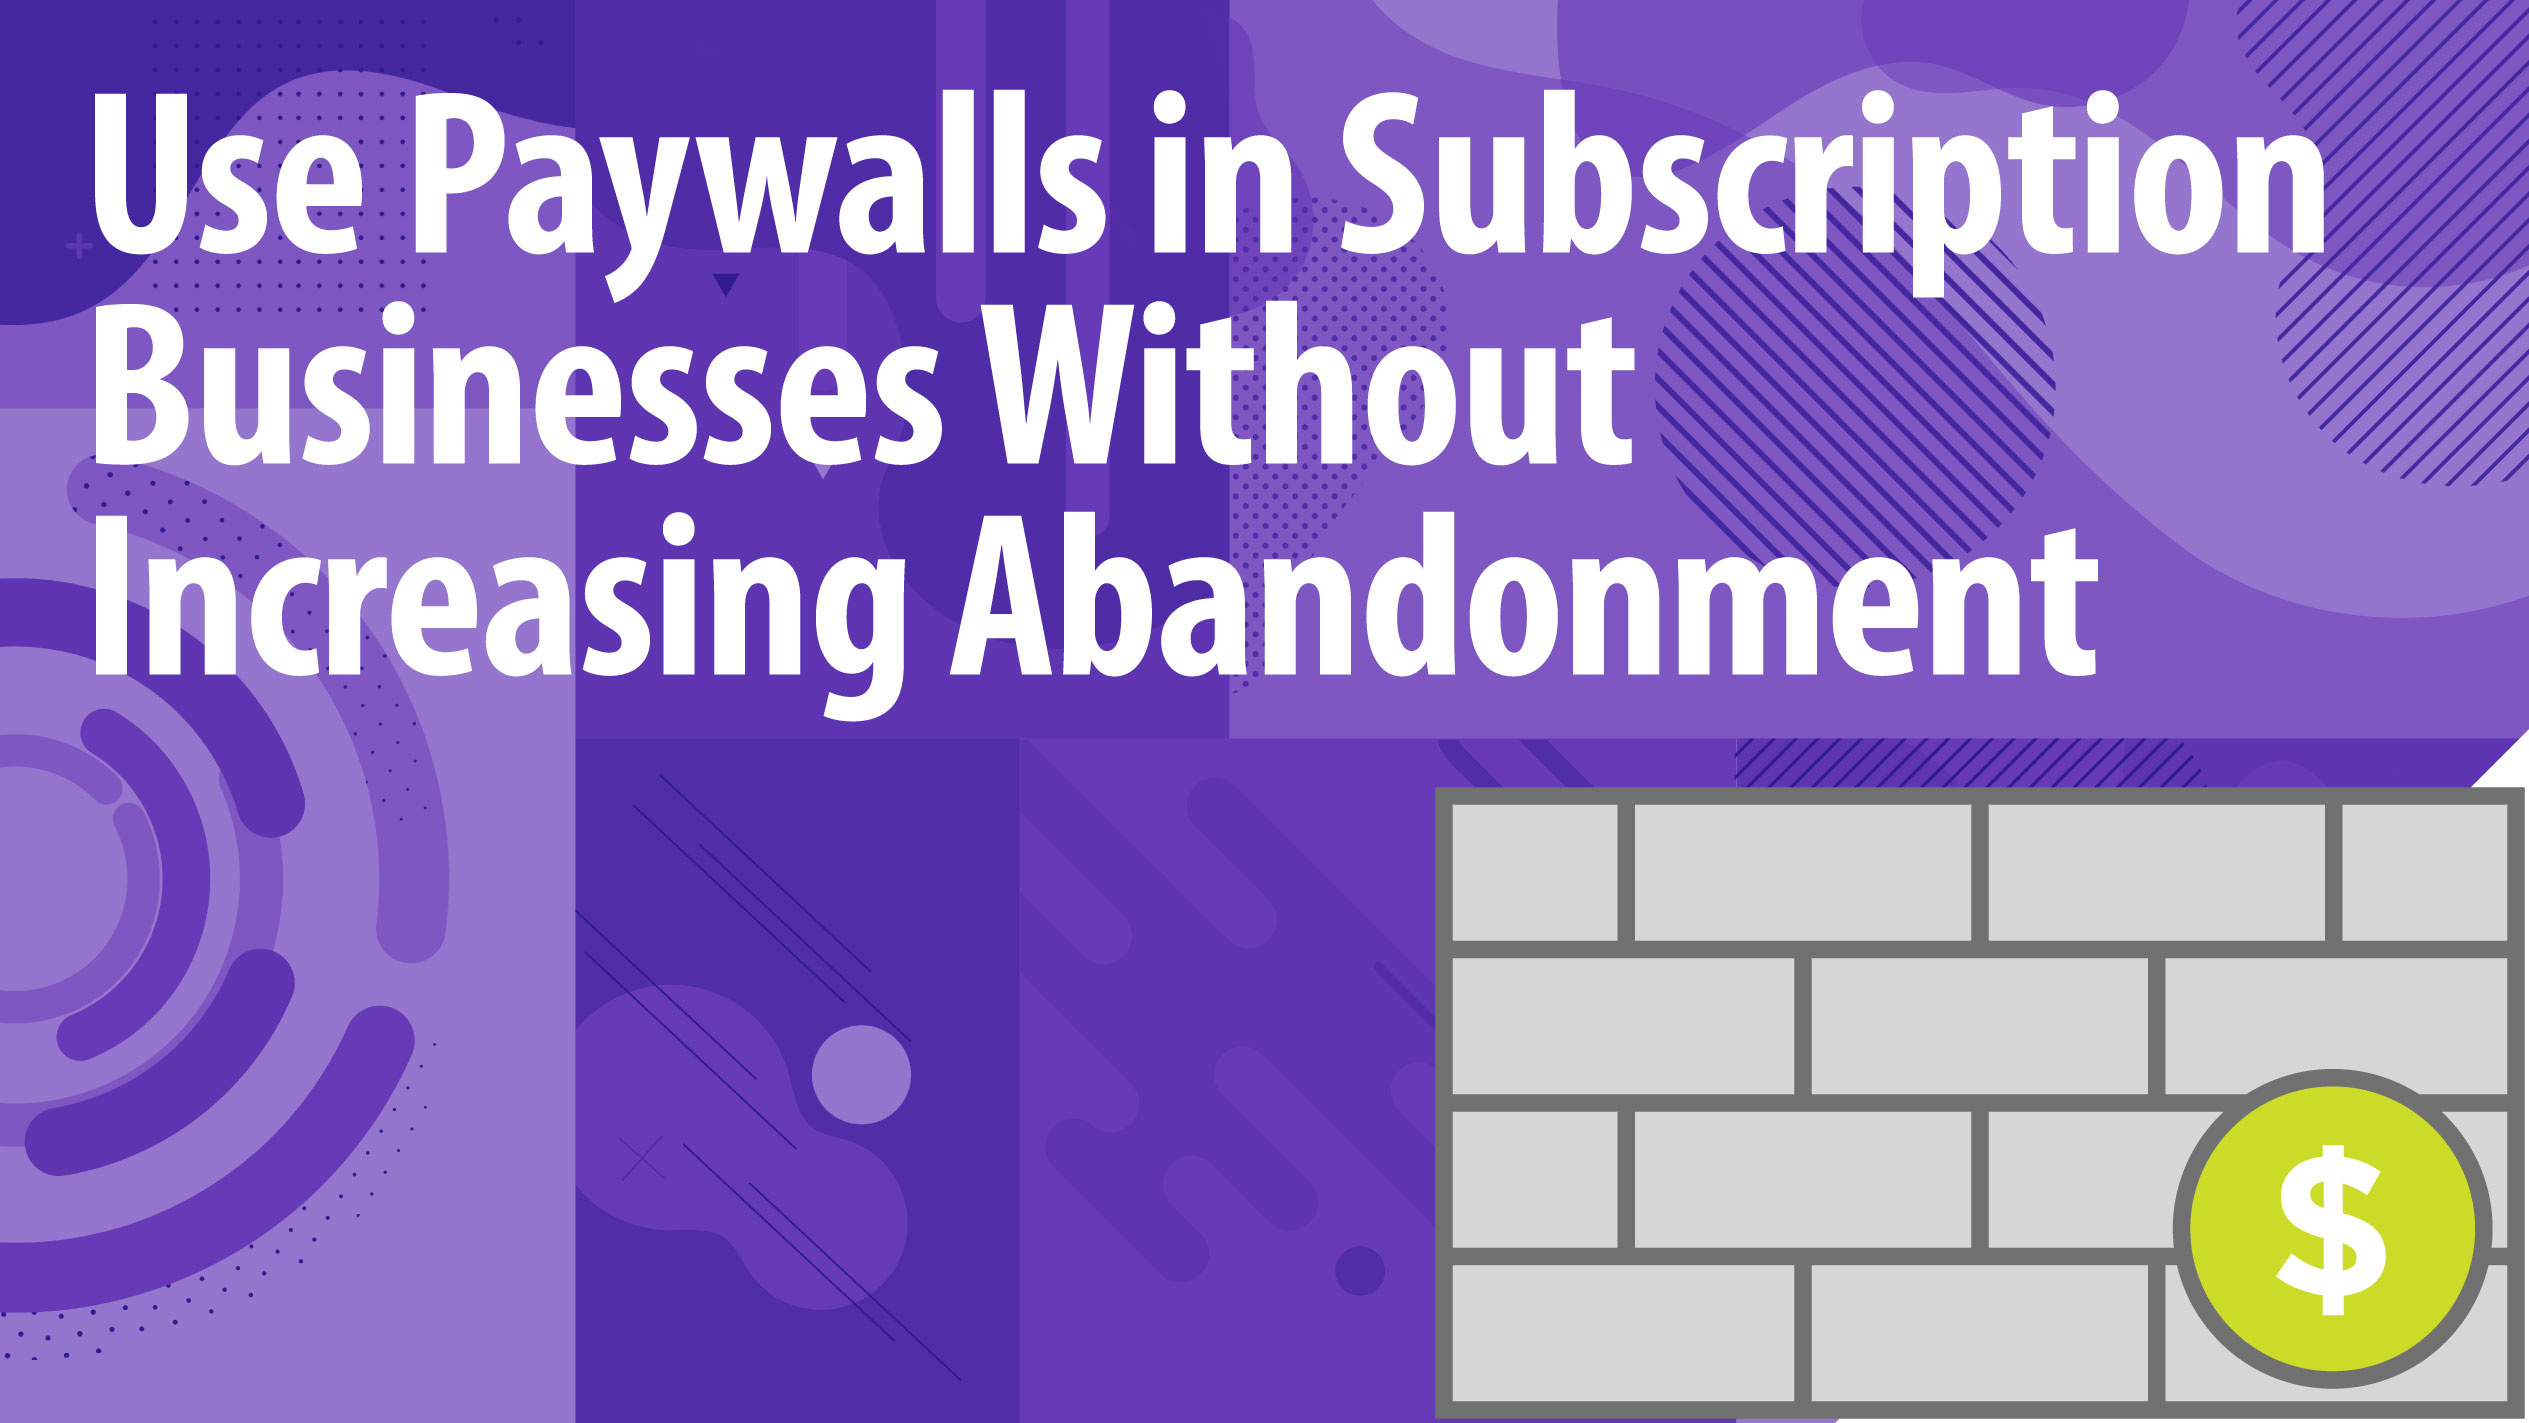 Use Paywalls in Subscription Businesses Without Increasing Abandonment